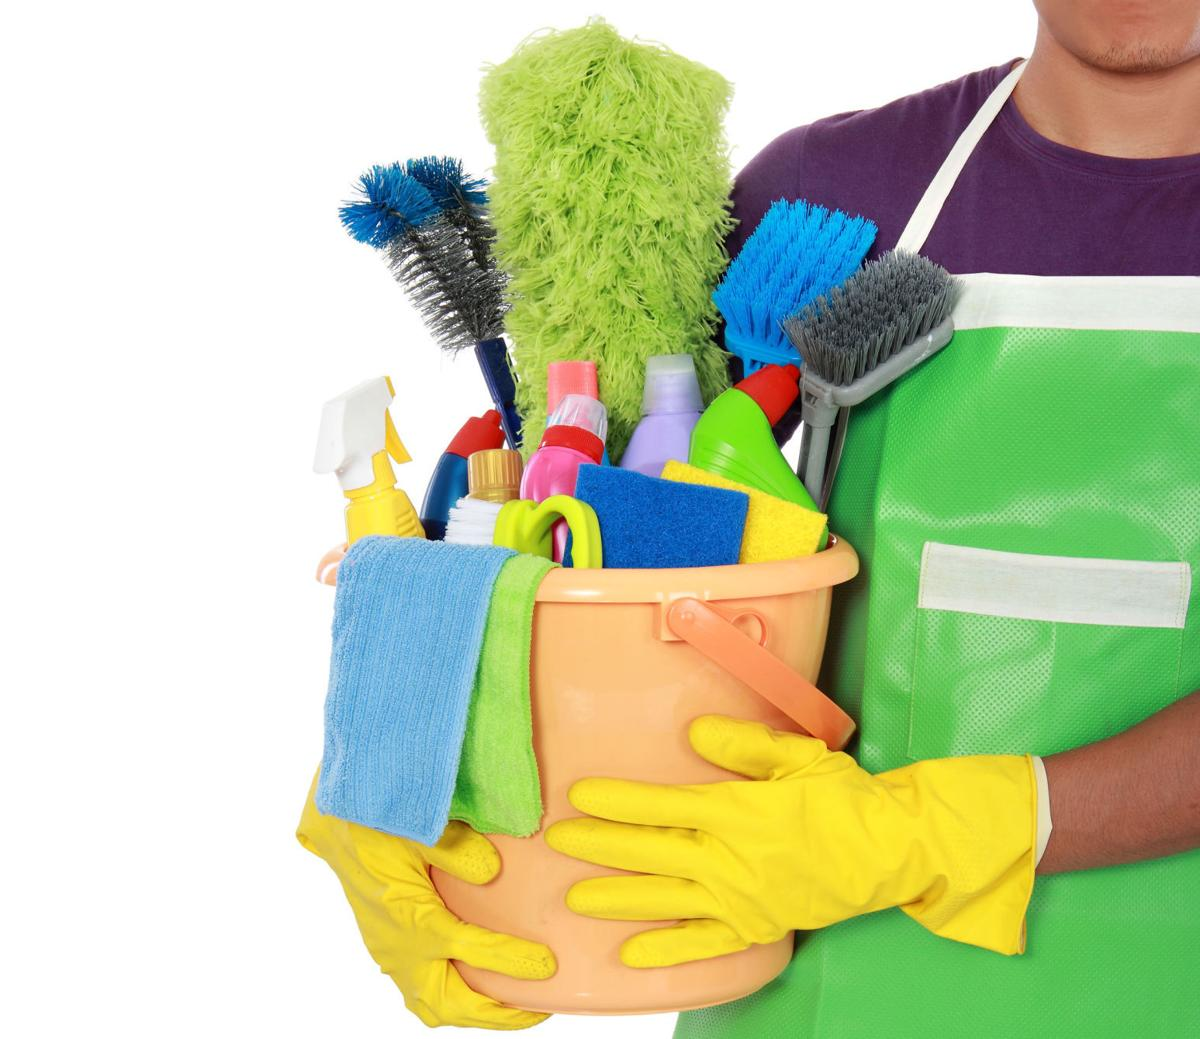 Quick home cleaning tips make chores a breeze